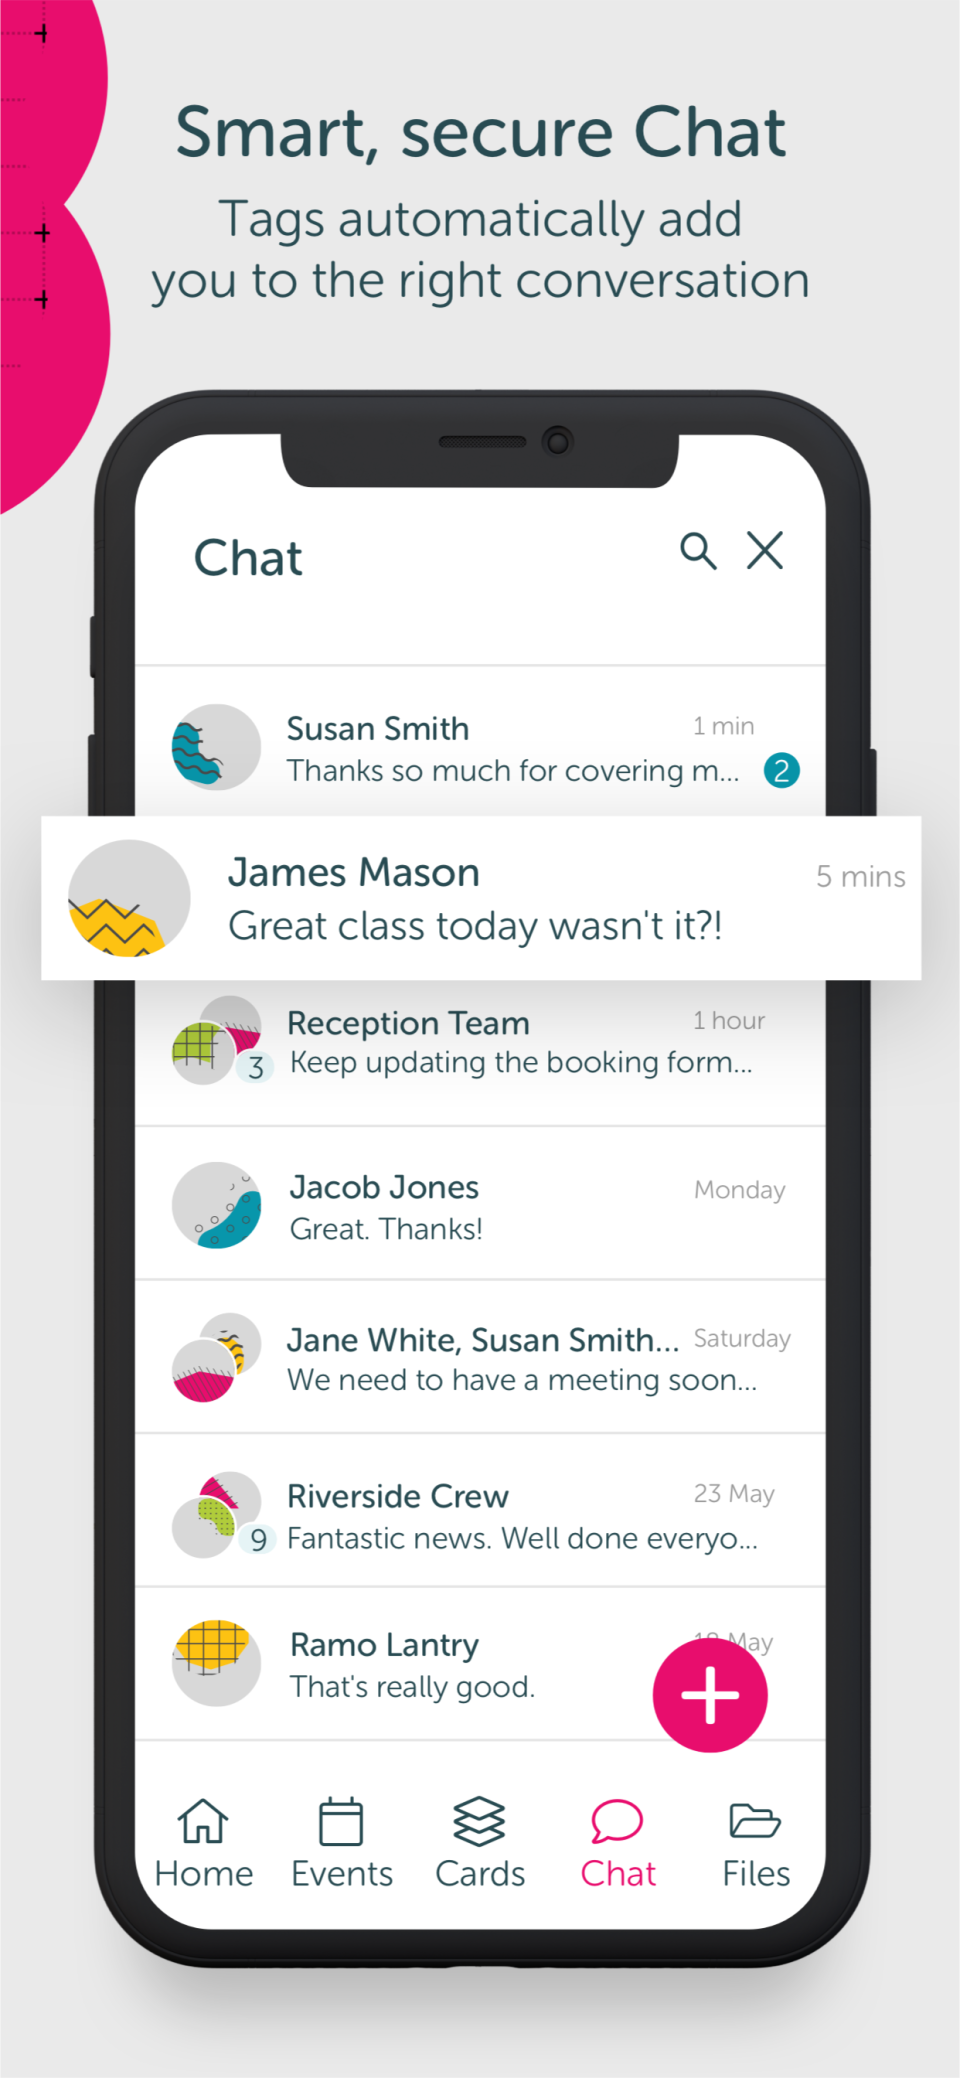 OurPeople Software - Secure Chat